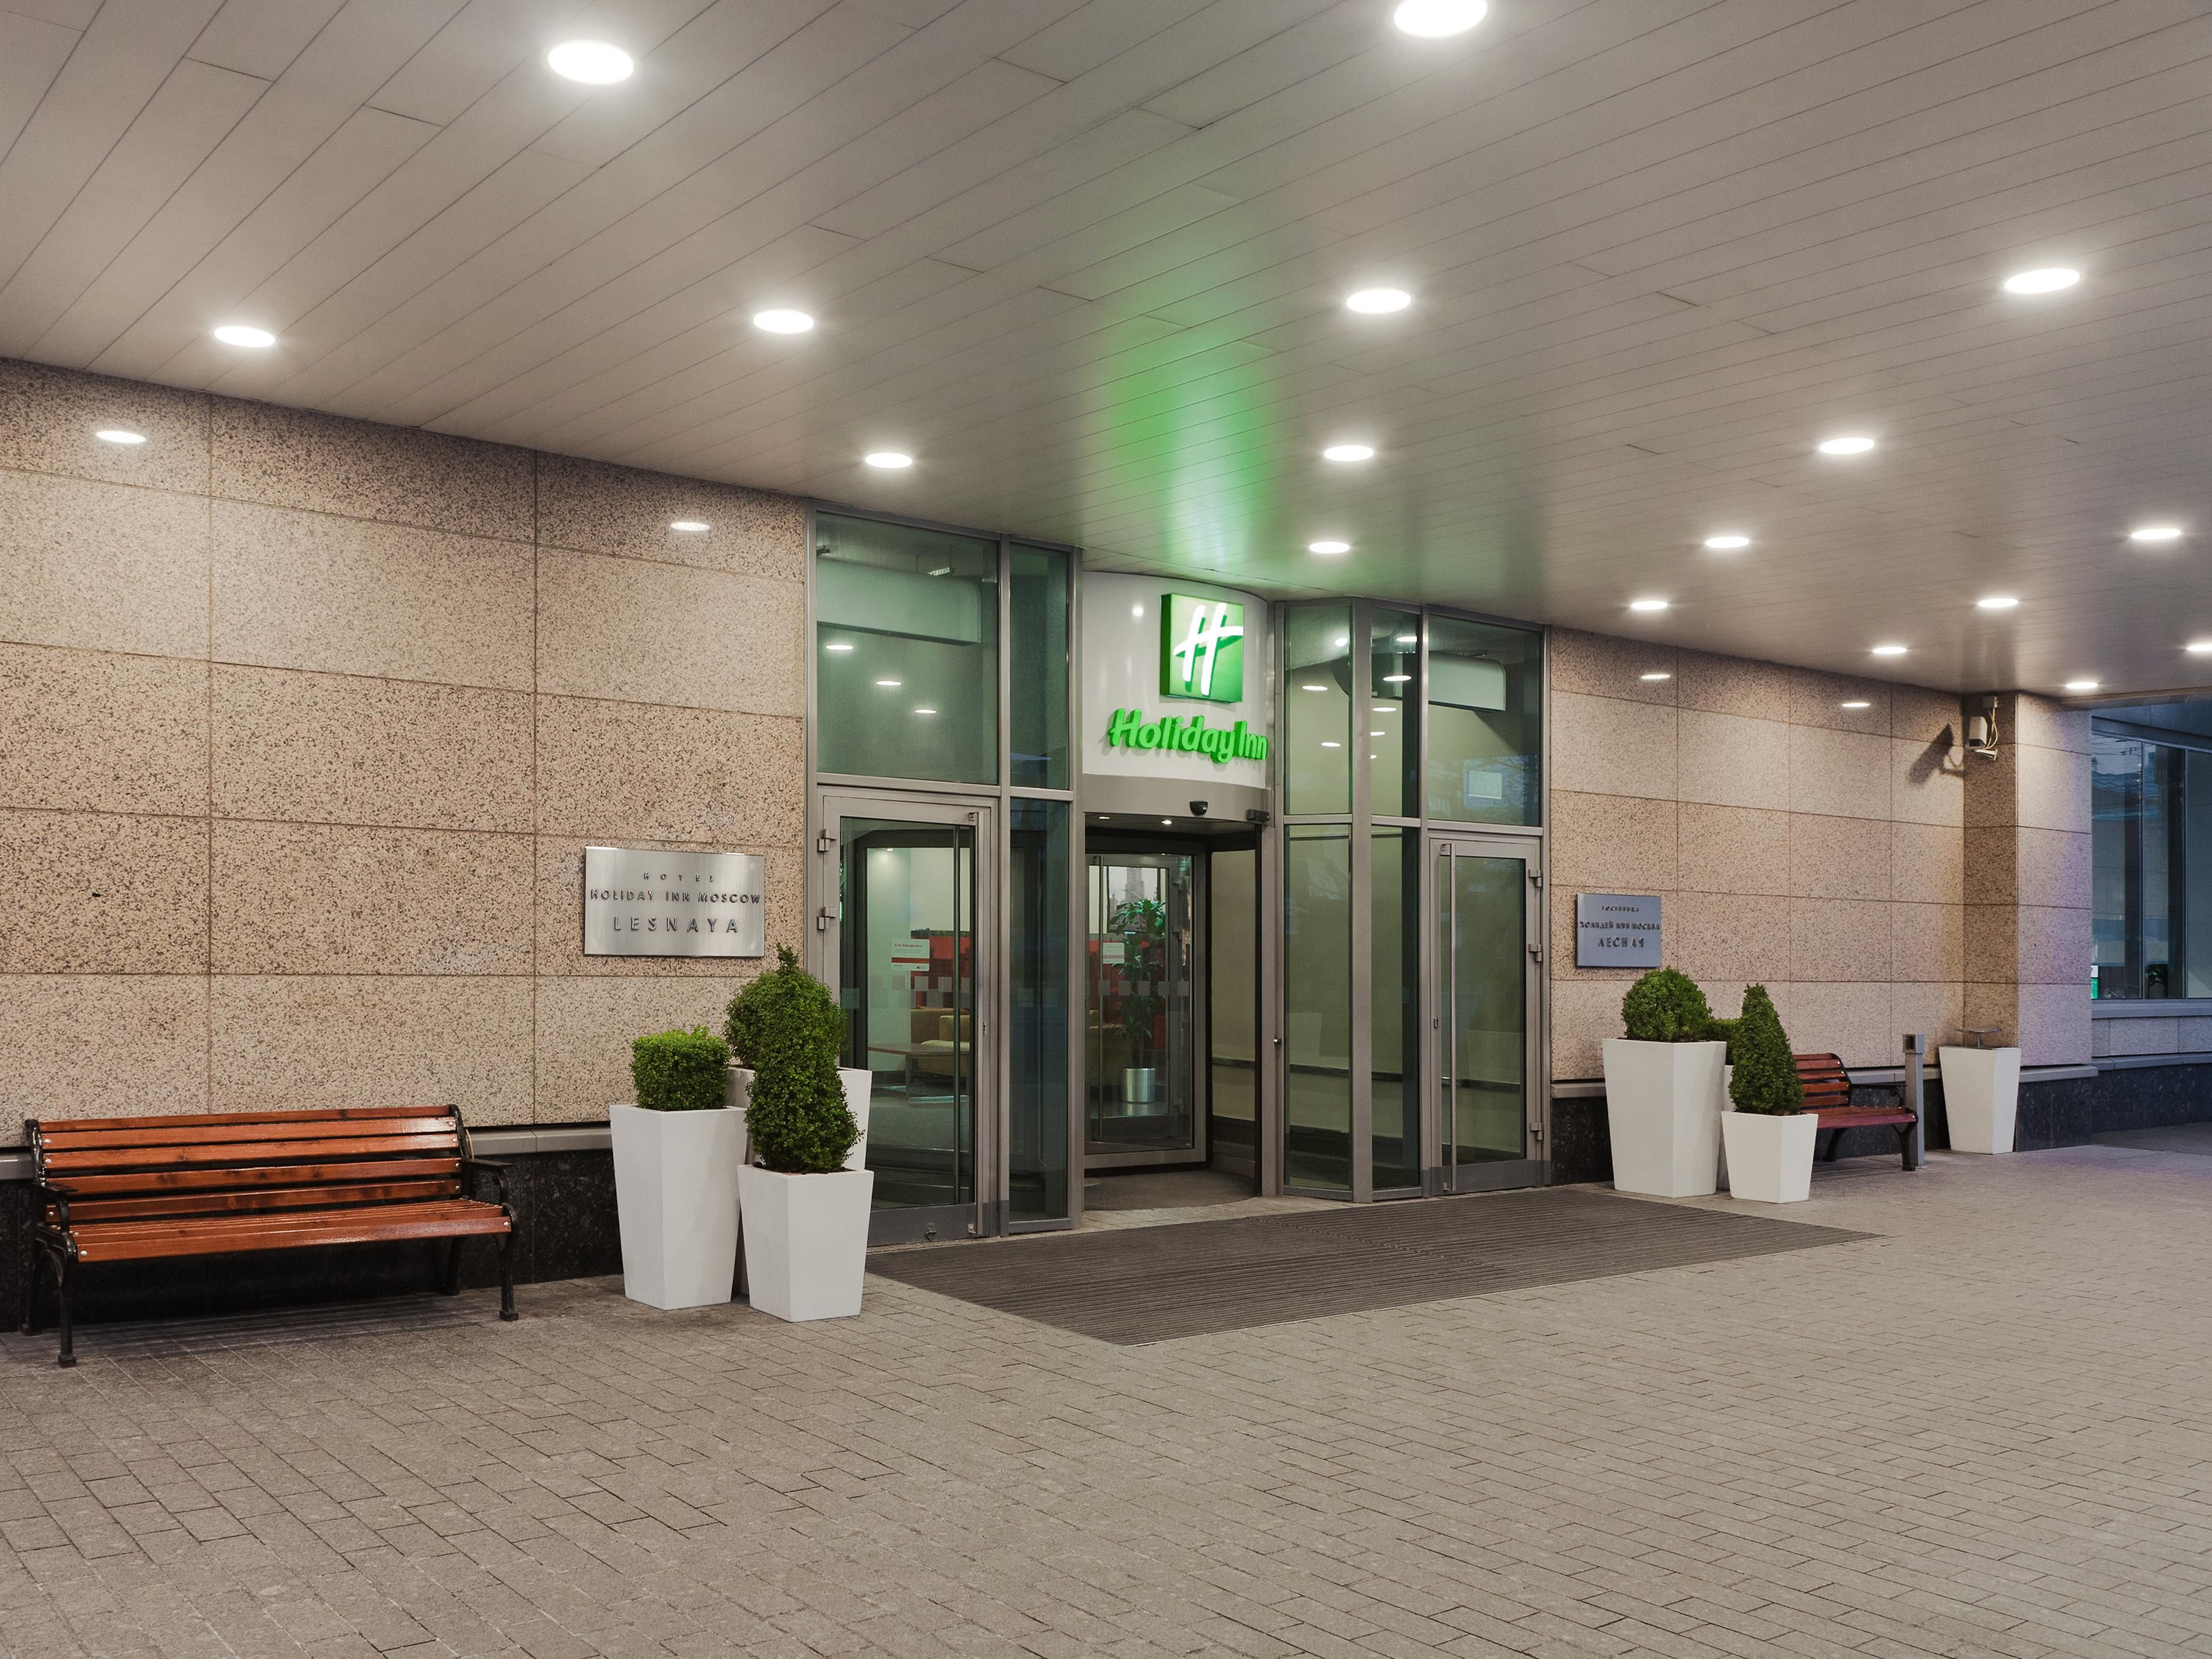 Welcoming green logo of the Holiday Inn Moscow Lesnaya